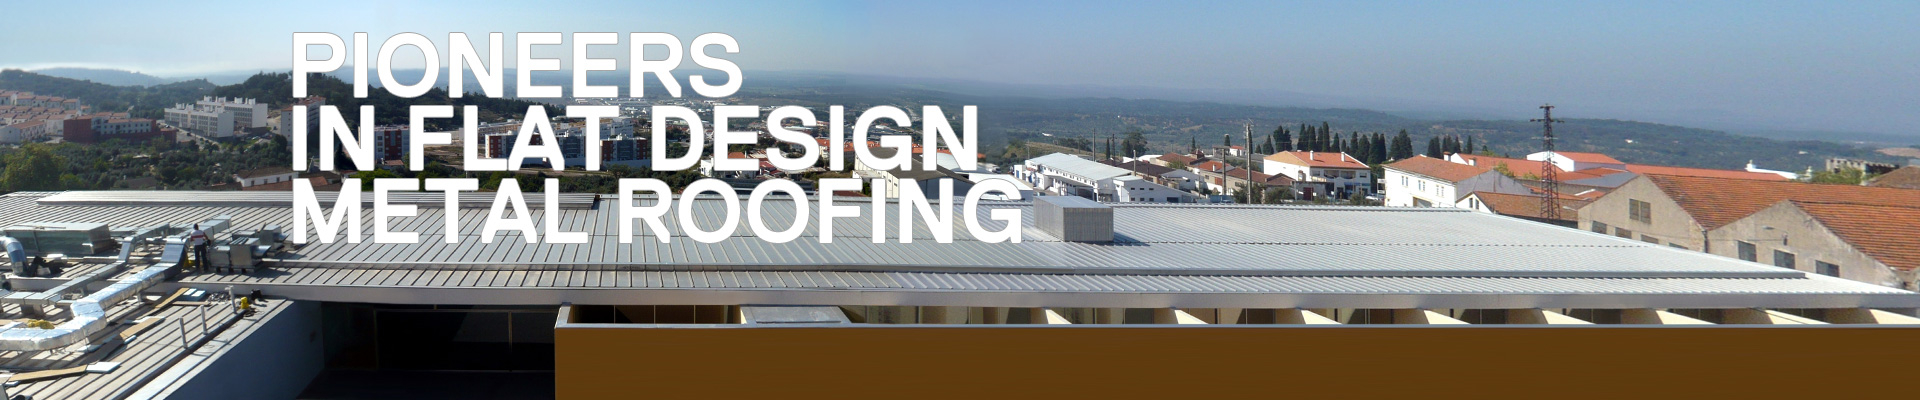 Riverclack Standing Seam Metal Roofing Solar And Green Roofs